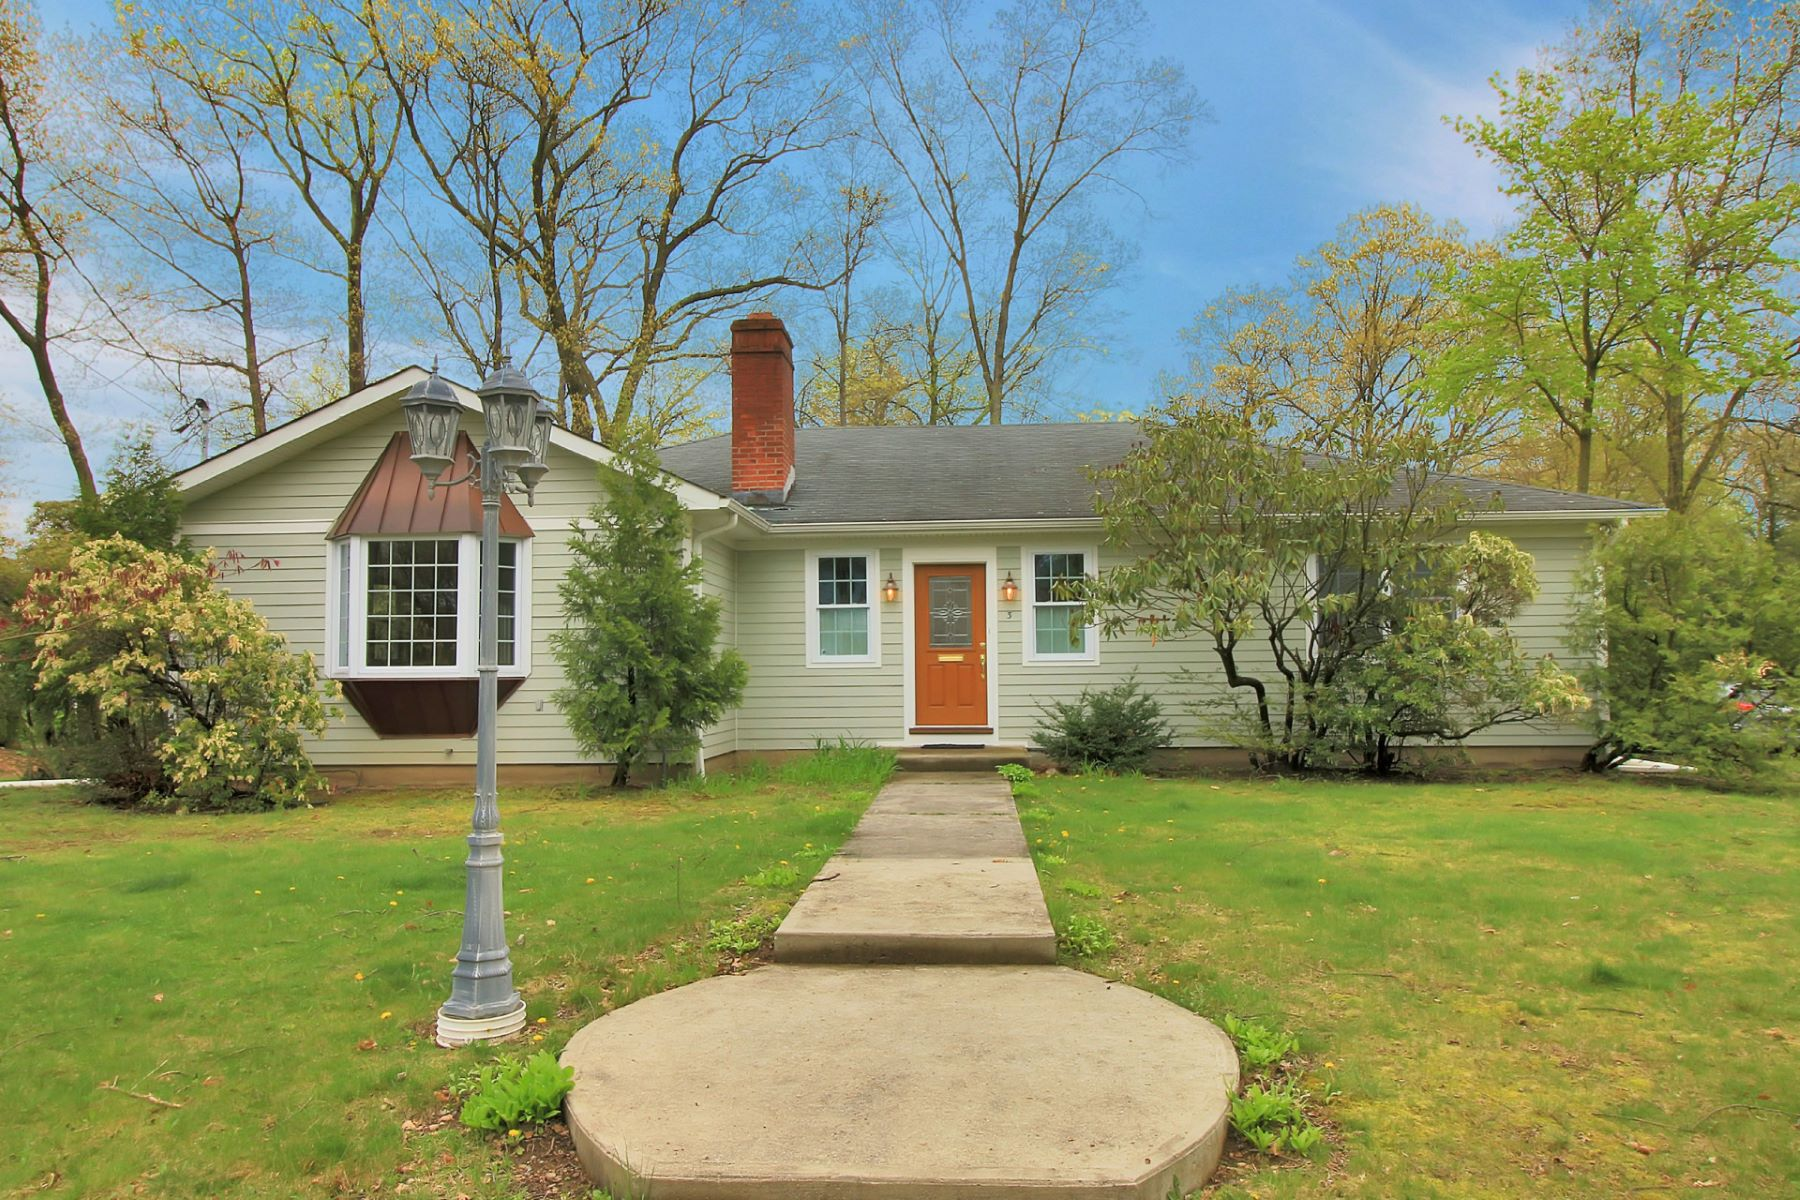 Single Family Home for Sale at Welcoming Walkway 3 Oak St Allendale, New Jersey 07401 United States